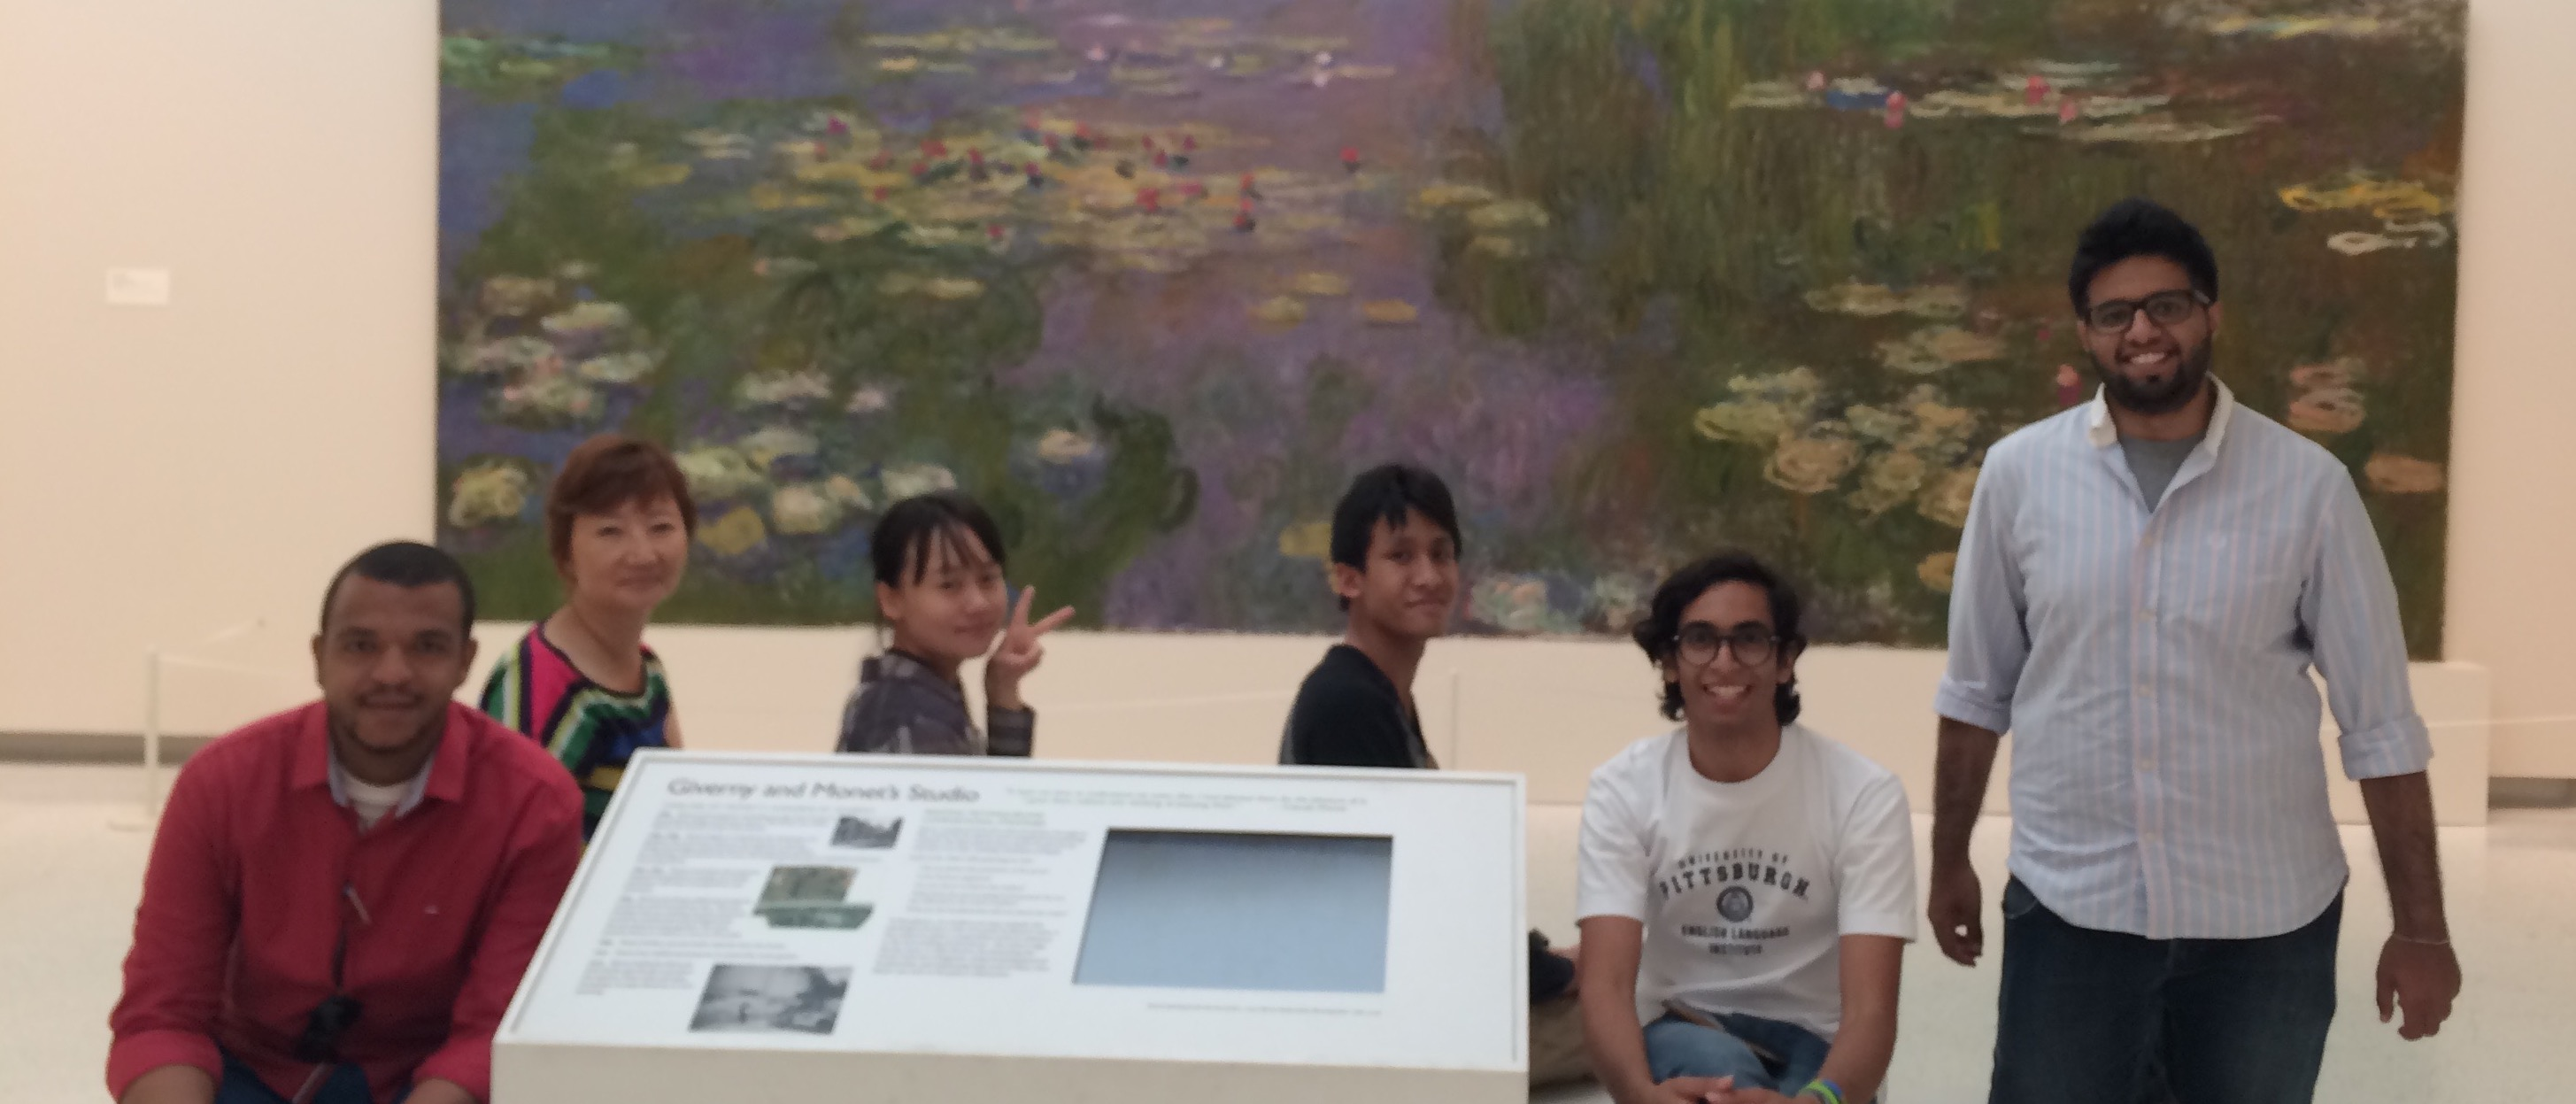 Students at the Carnegie Museum of Art